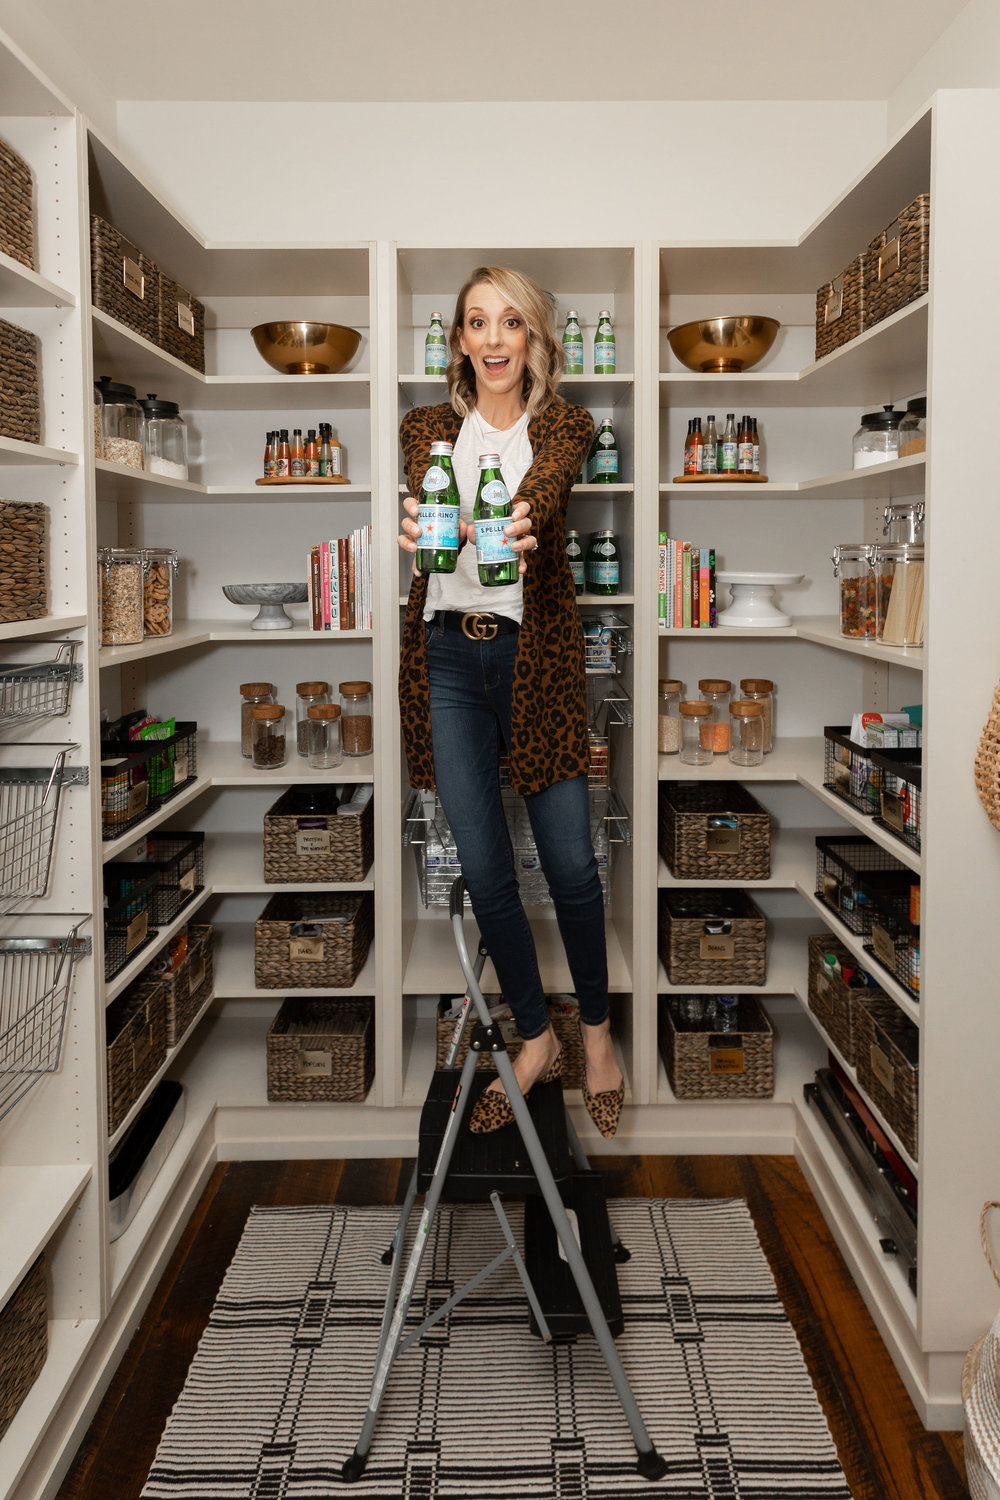 House of Turk | Pantry Organization